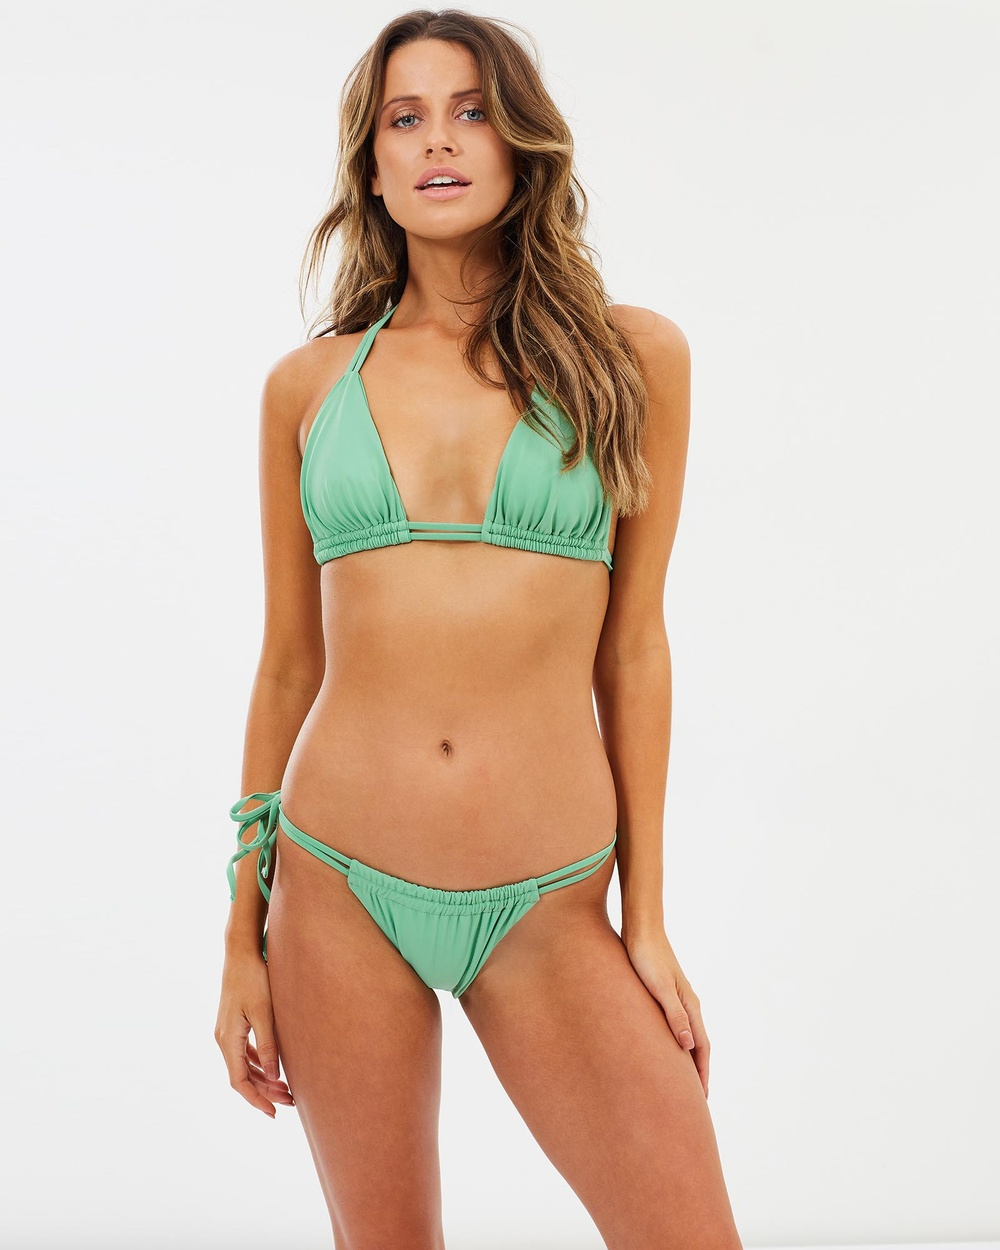 Tanliines The Radical Briefs Bikini Bottoms Mint The Radical Briefs